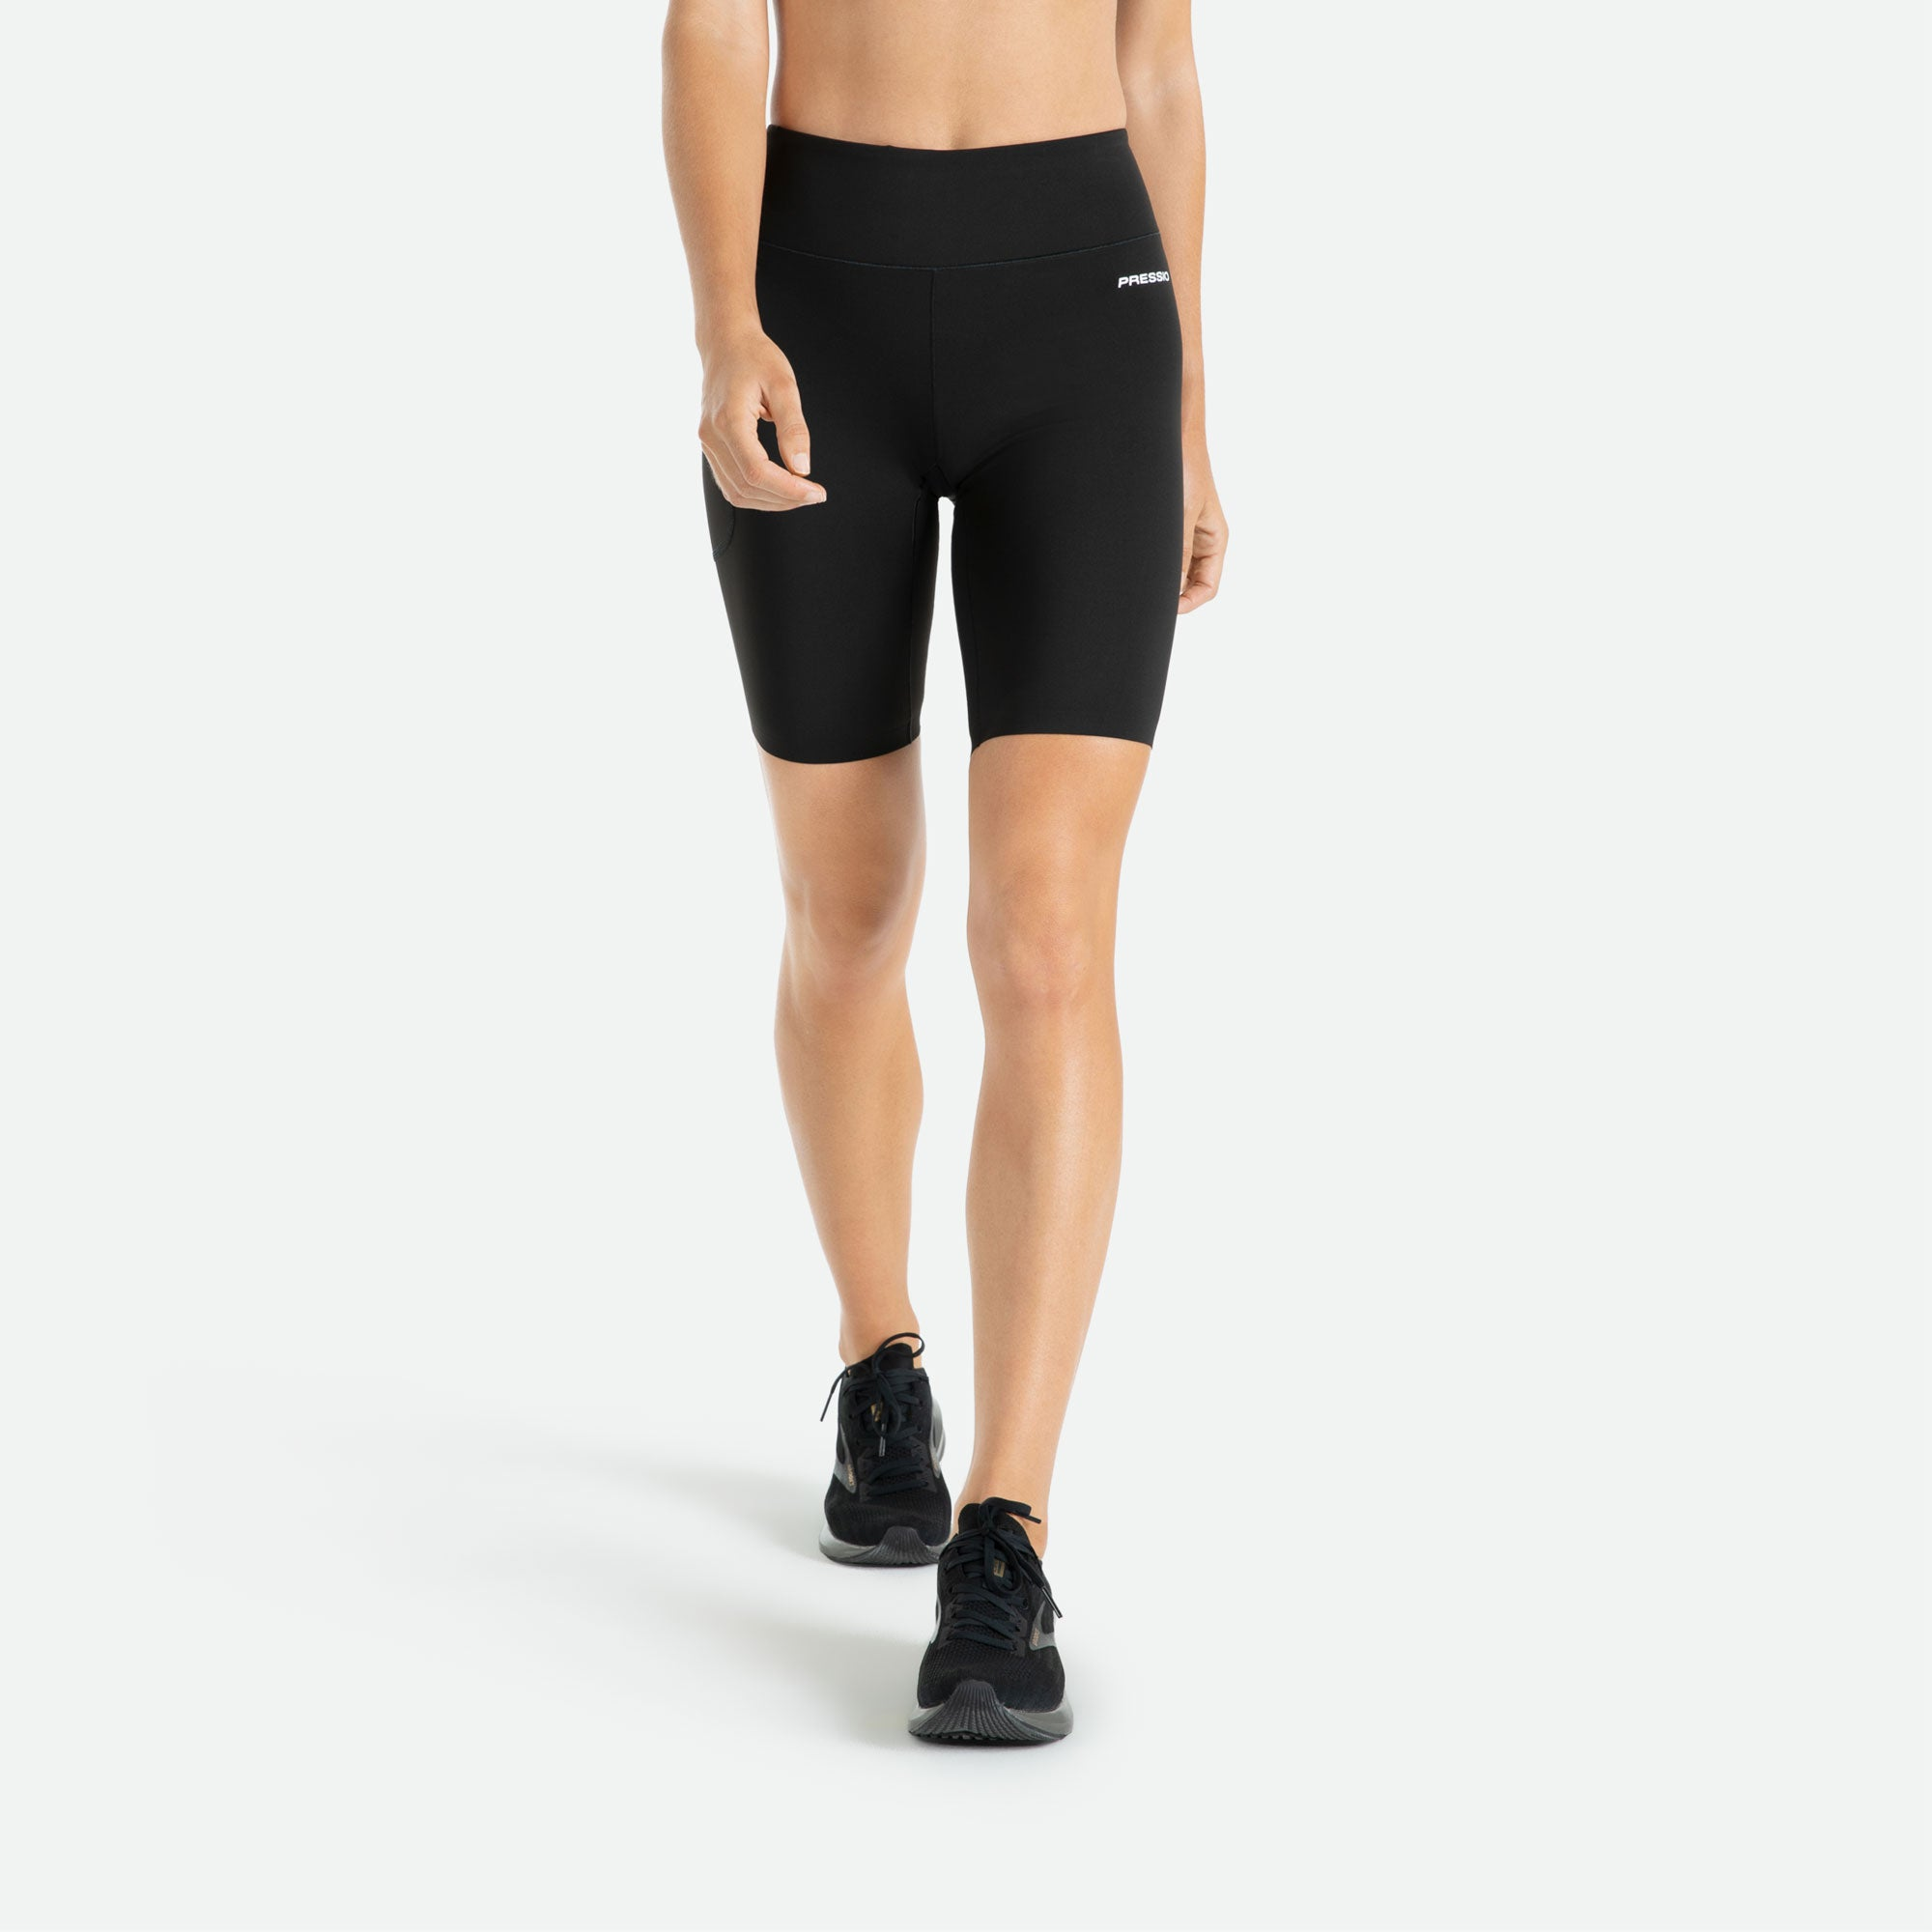 Womens Pressio 5'' mid rise compression short is figure flattering and with active seams will move with the body and enable restriction-free workouts.